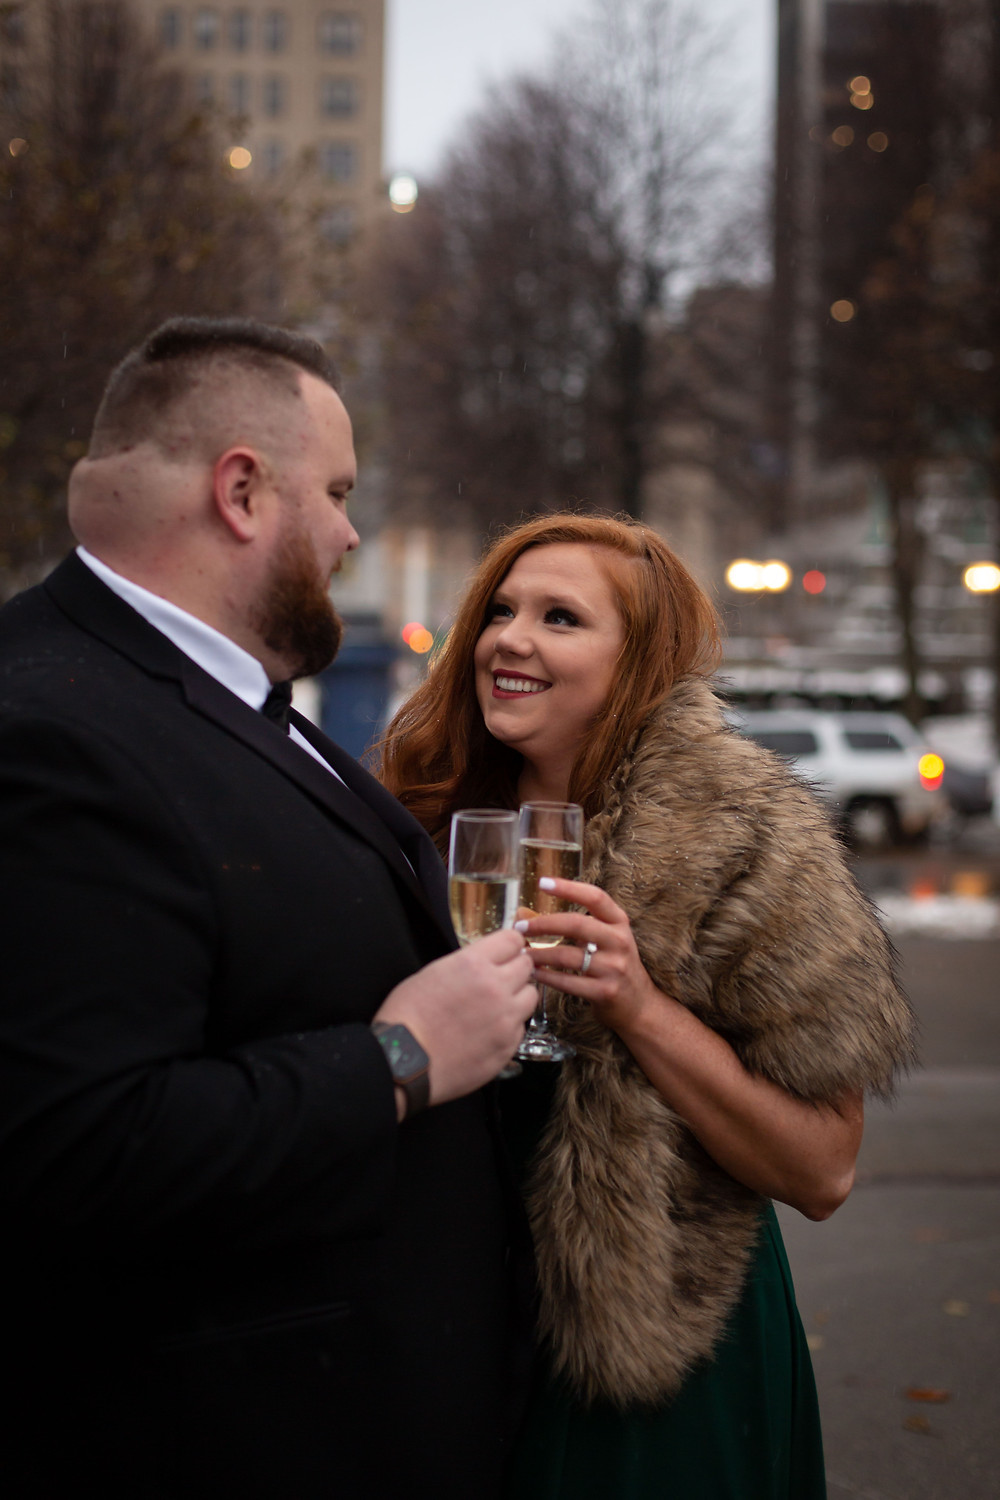 downtown Buffalo winter formal engagement photo shoot with champagne toast